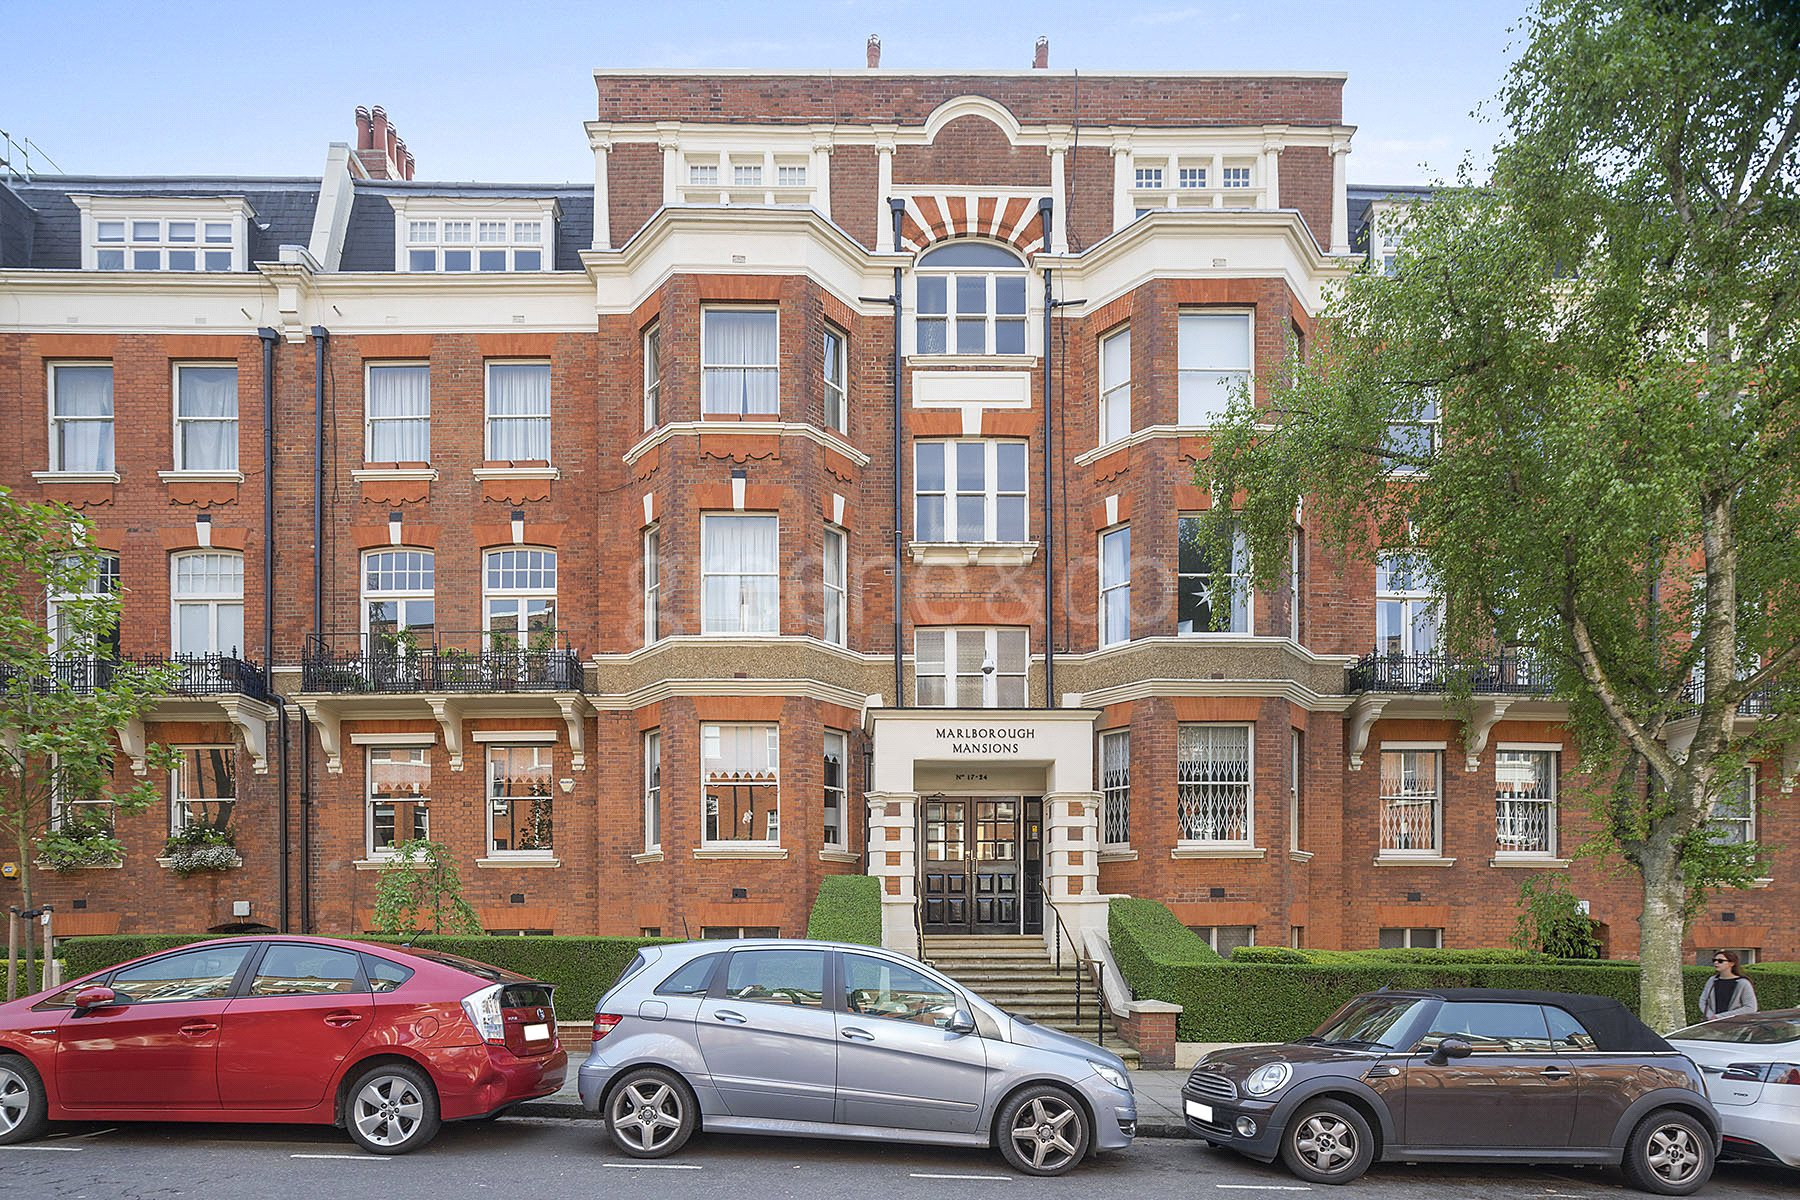 4 Bedrooms Flat for sale in Marlborough Mansions, West Hampstead, London, NW6